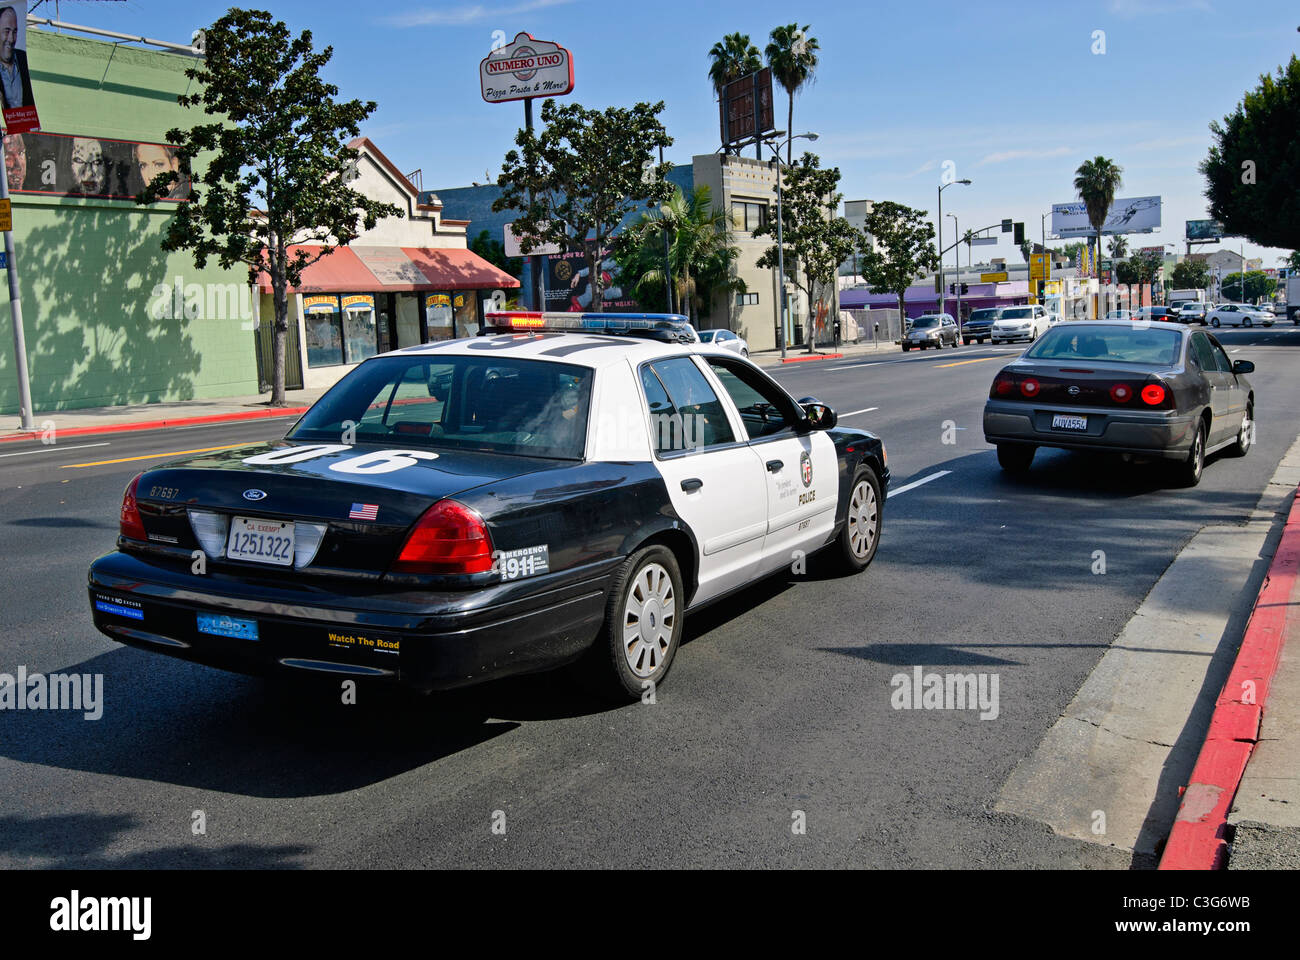 Car being pulled over by a police officer. - Stock Image